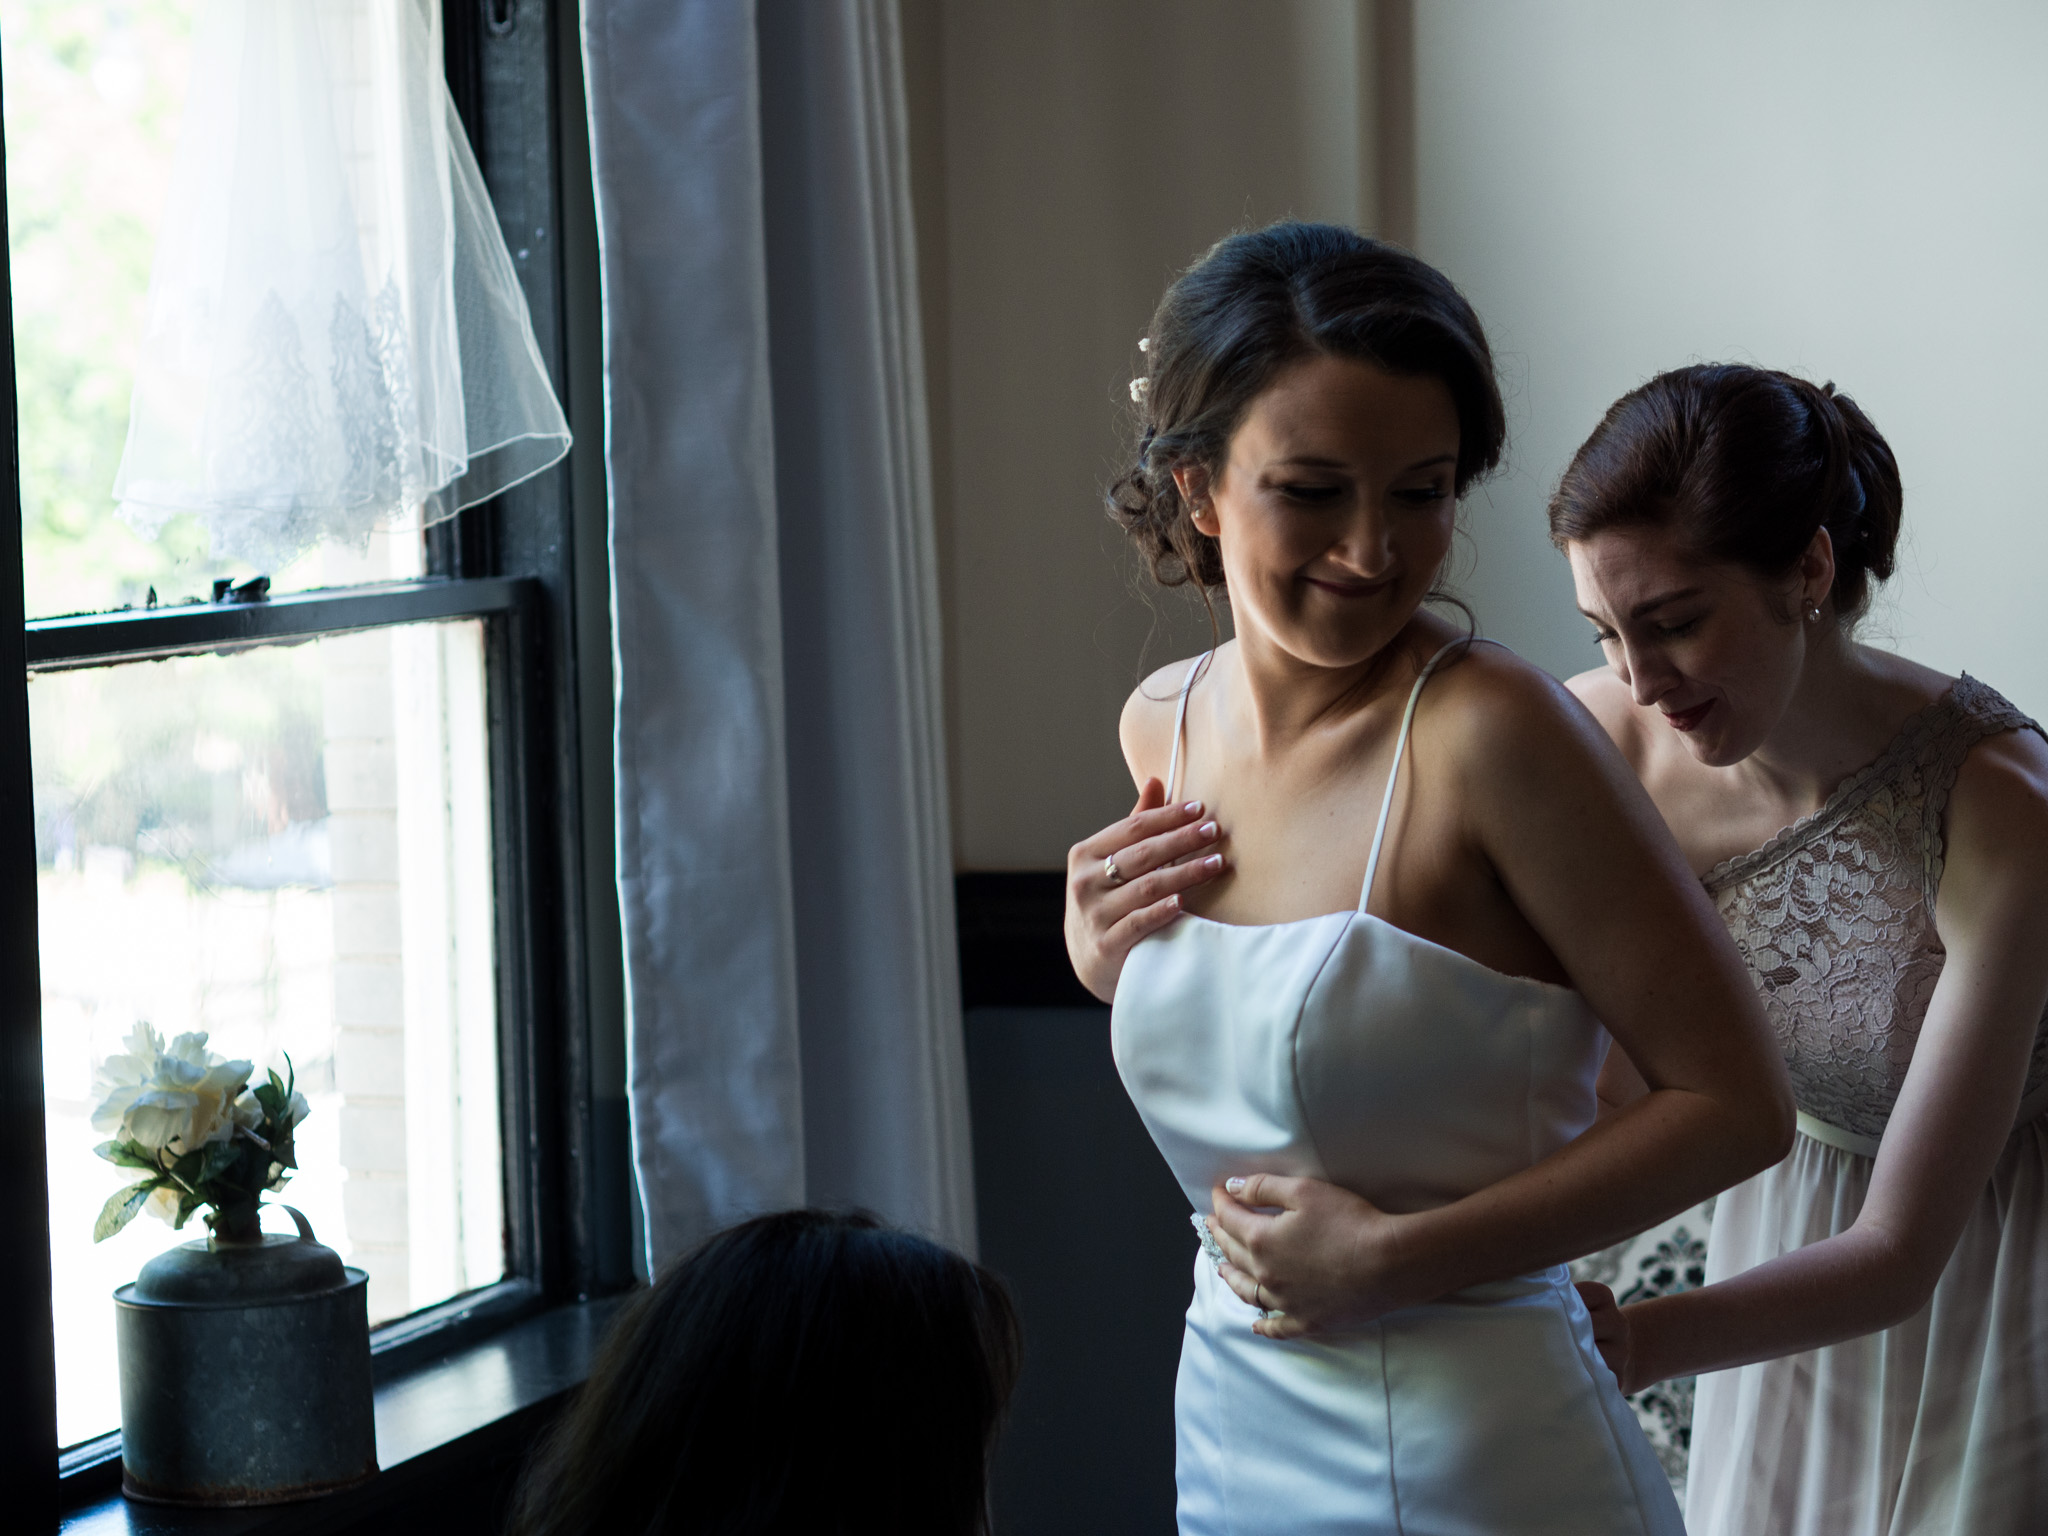 214 Martin Street, Wedding Photography, Wedding Dress, Getting Ready, Bridesmaid